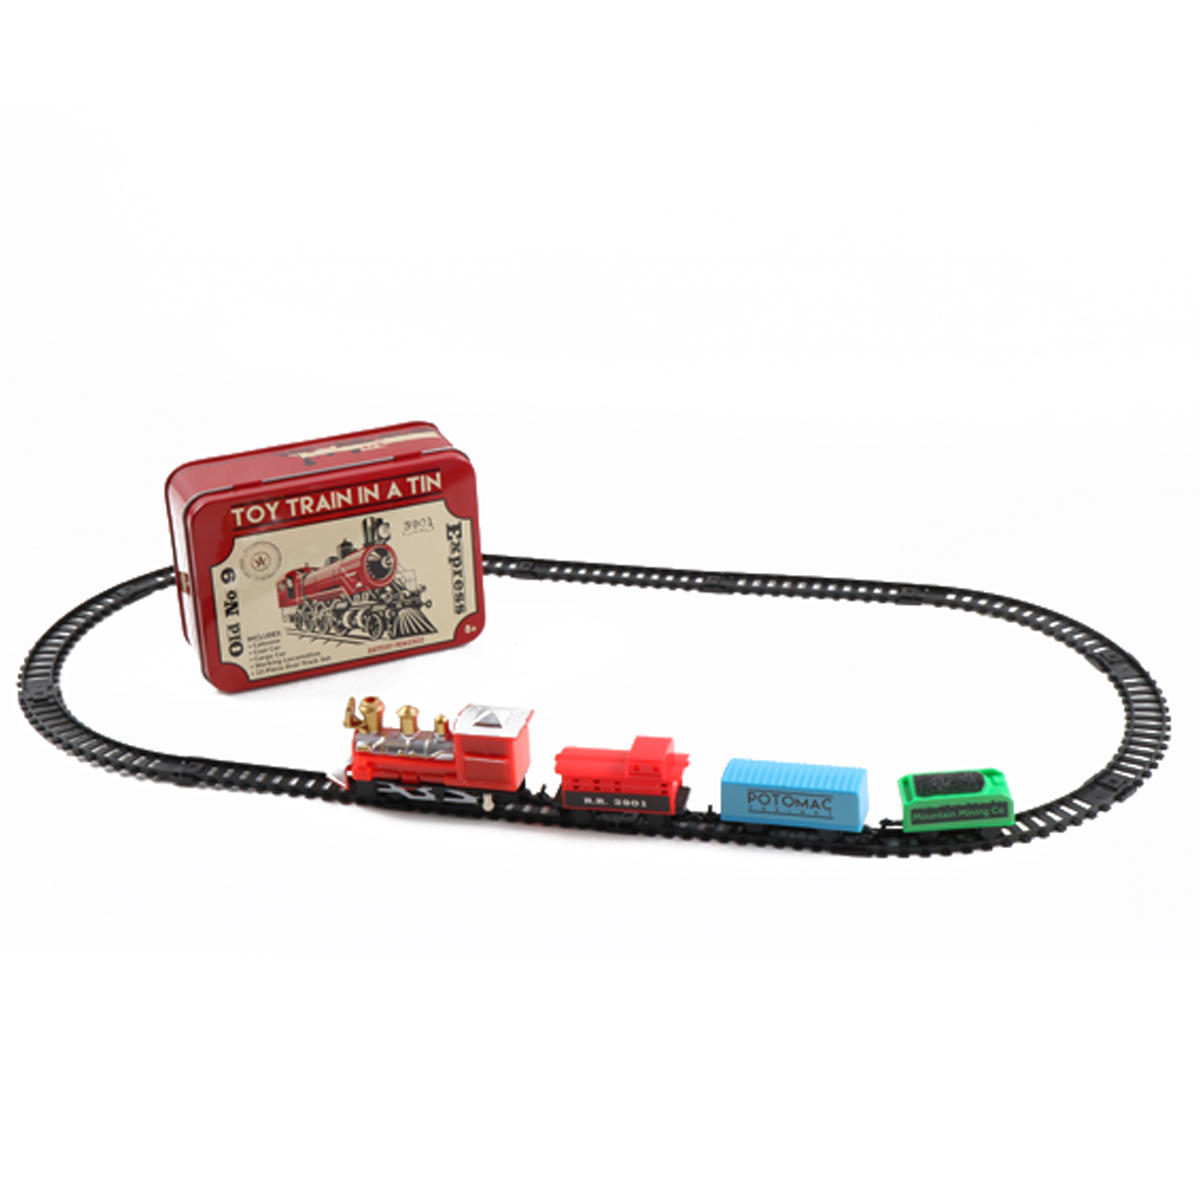 Christmas Train Set.Christmas Train Set Track Toys Collection Gift Kid Developmental Toy